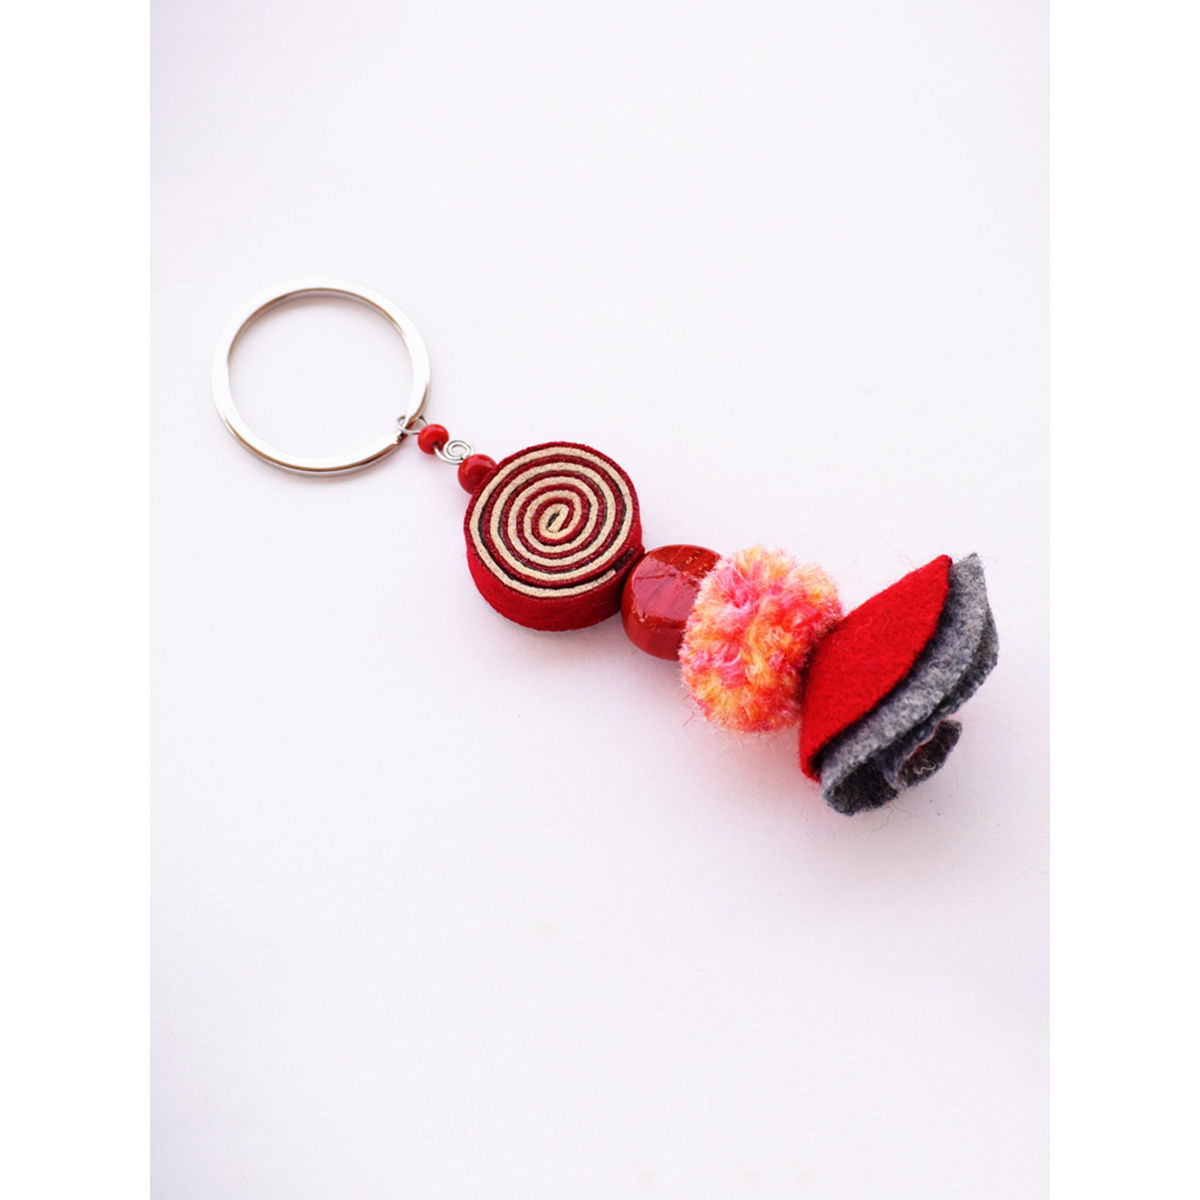 Psychedelic Doll Keychain - Red